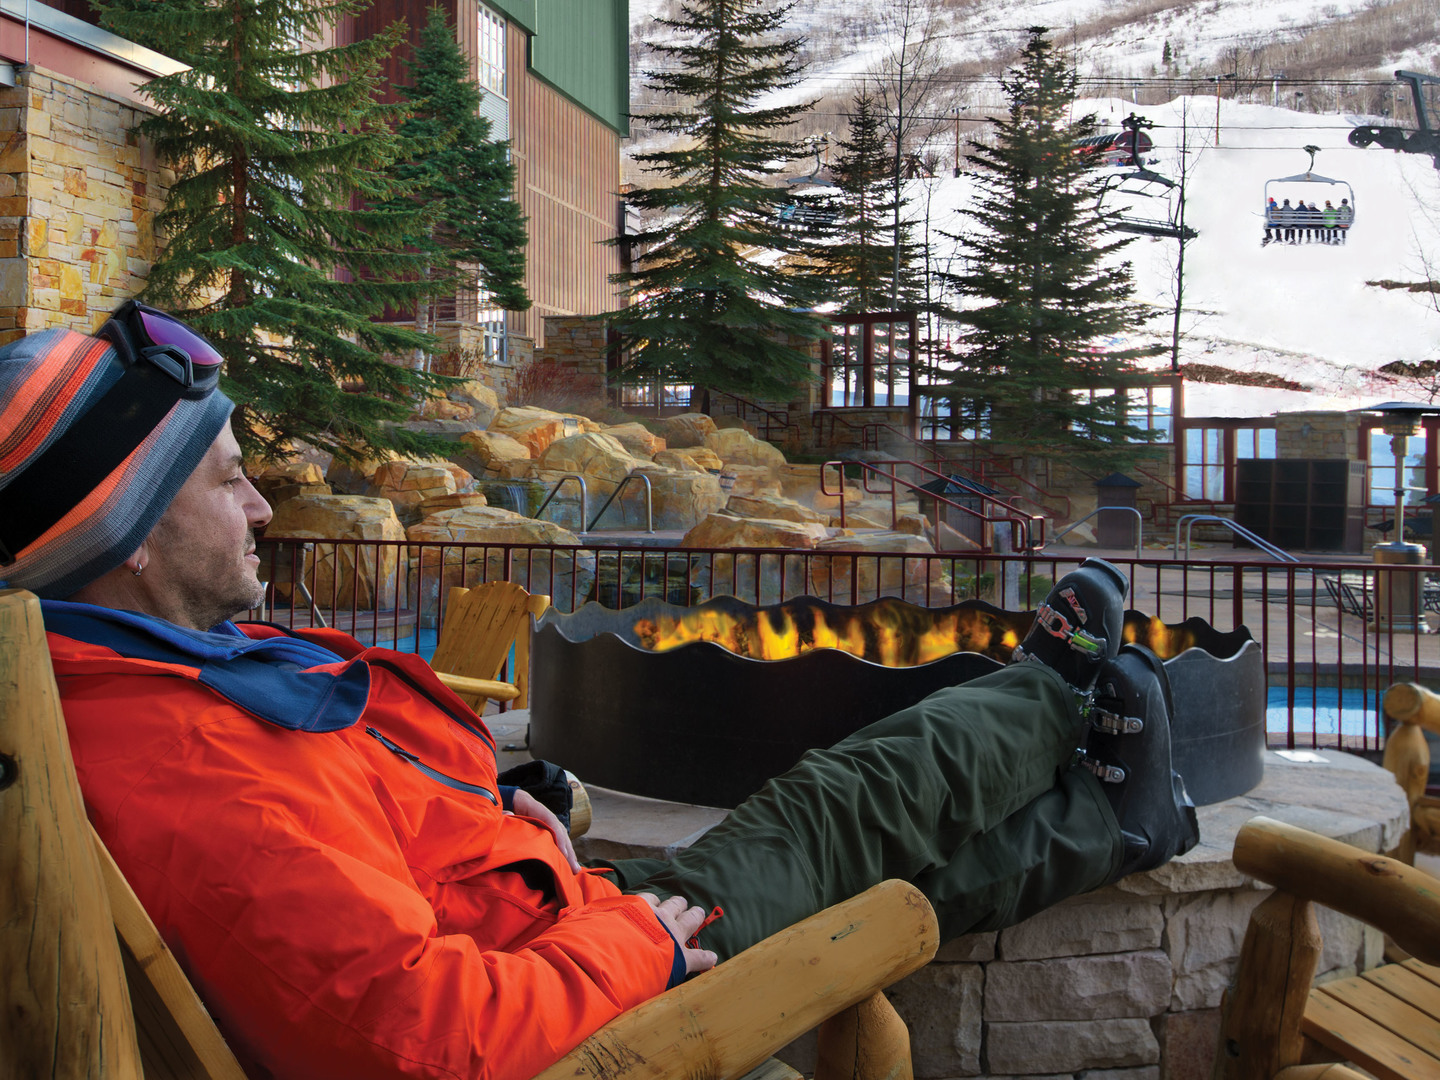 Marriott's MountainSide Fire Pit. Marriott's MountainSide is located in Park City, Utah United States.